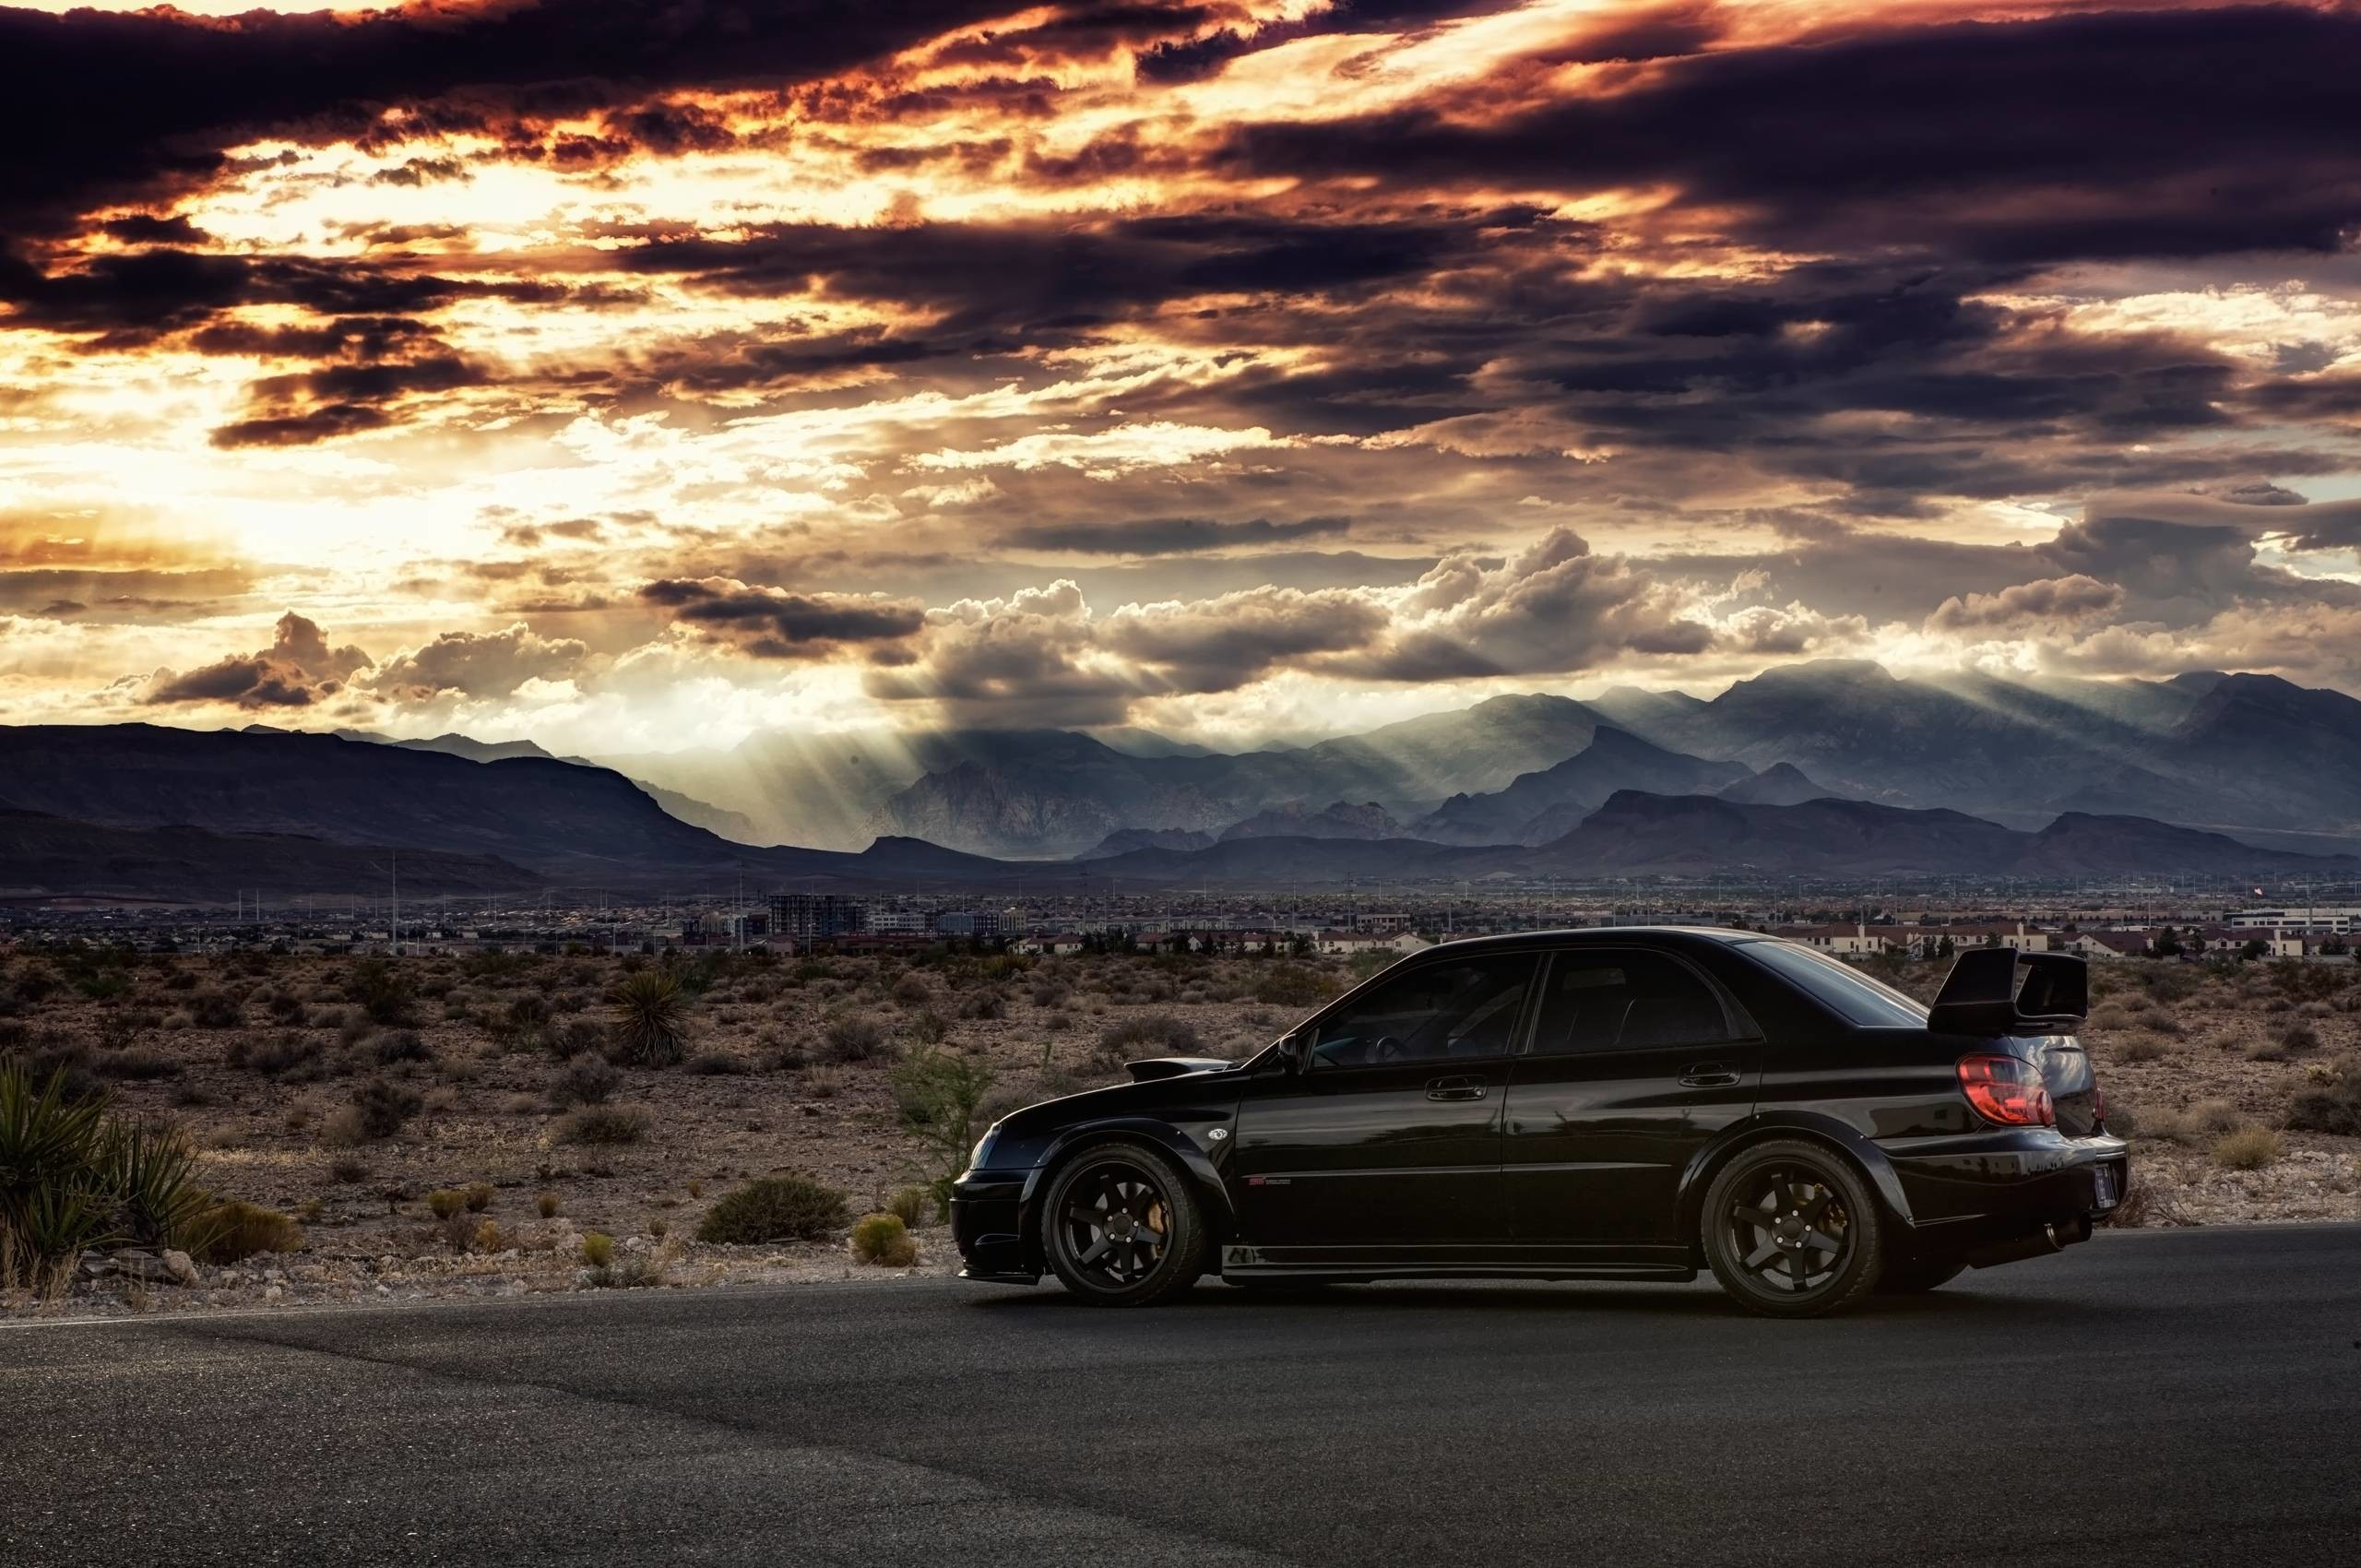 Wrx Sti Iphone Wallpaper 66 Images